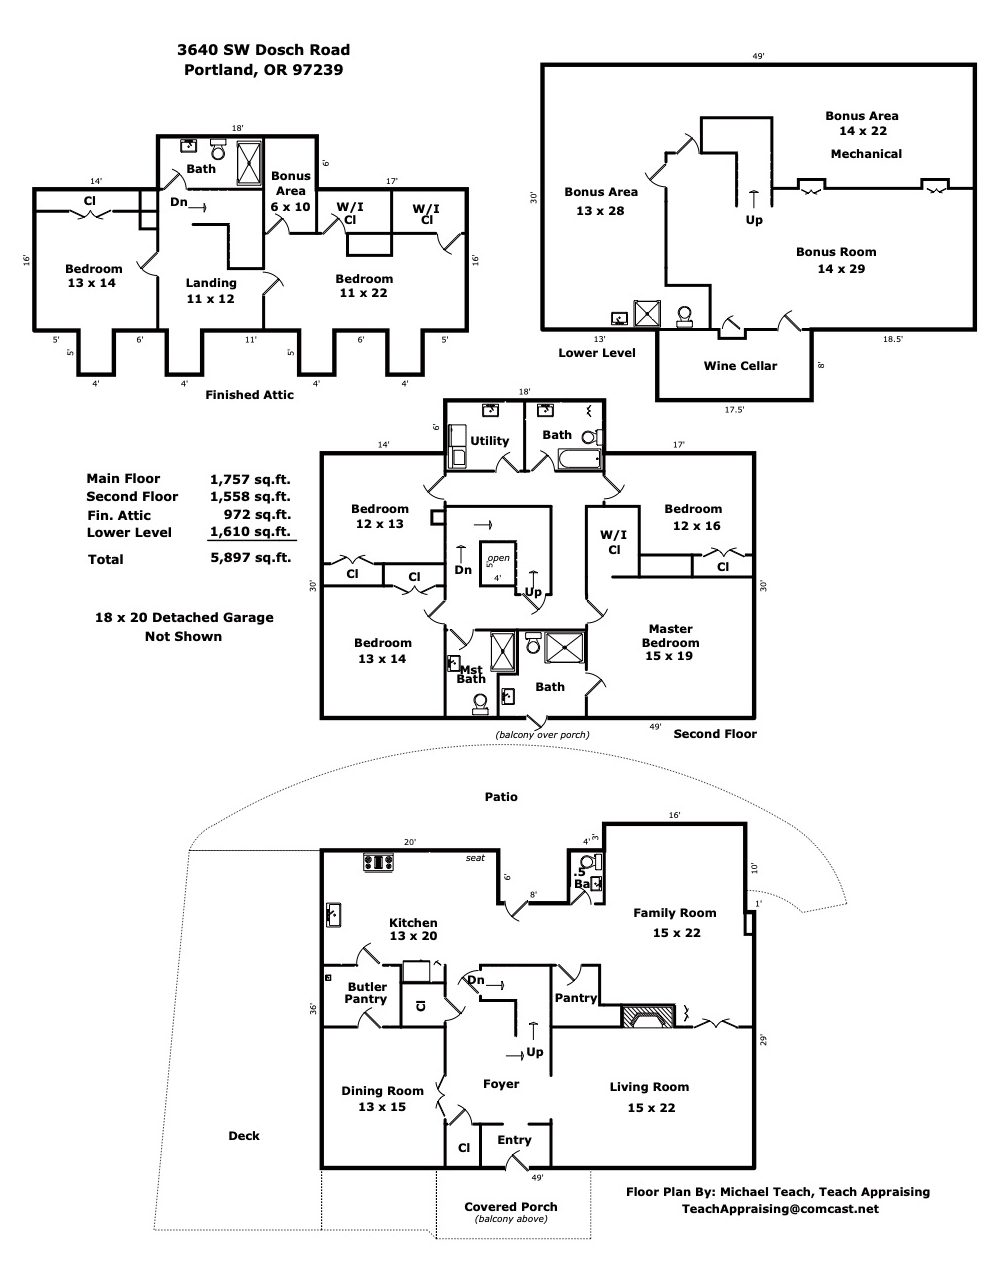 Mike Teach Floor Plan BW JPEG